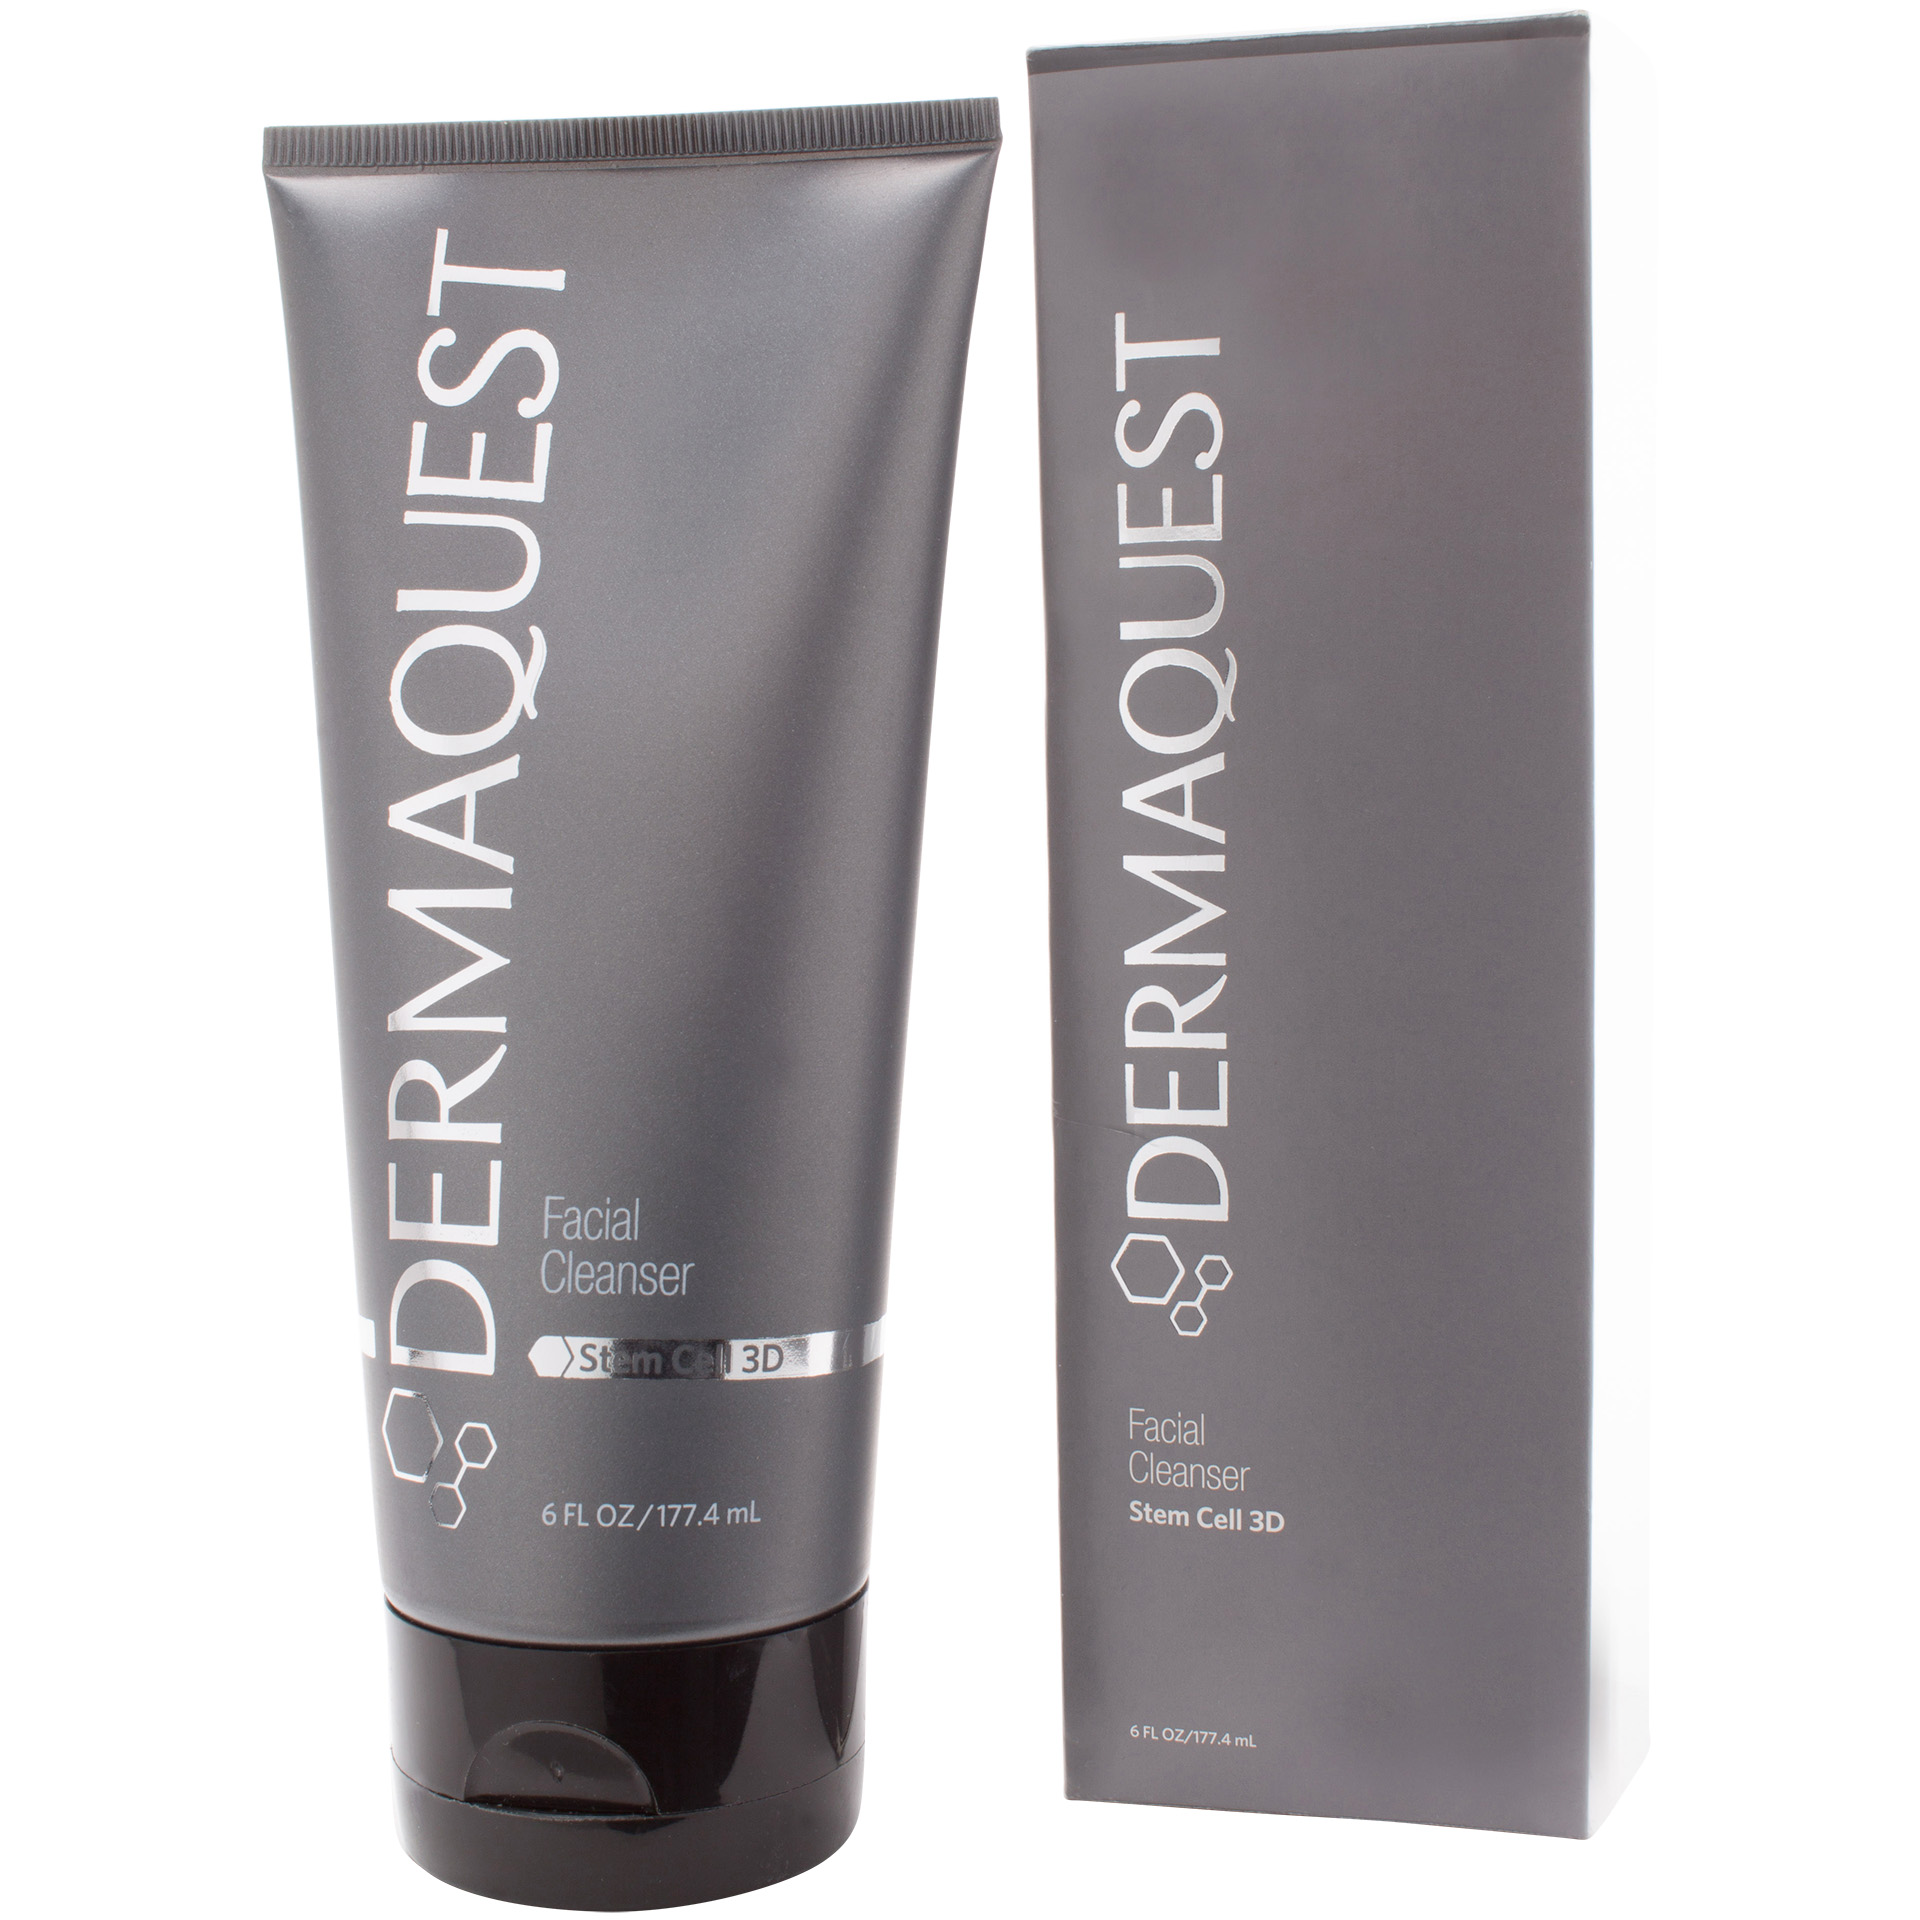 Dermaquest Stem Cell 3d Facial Cleanser 6 Oz New In Box